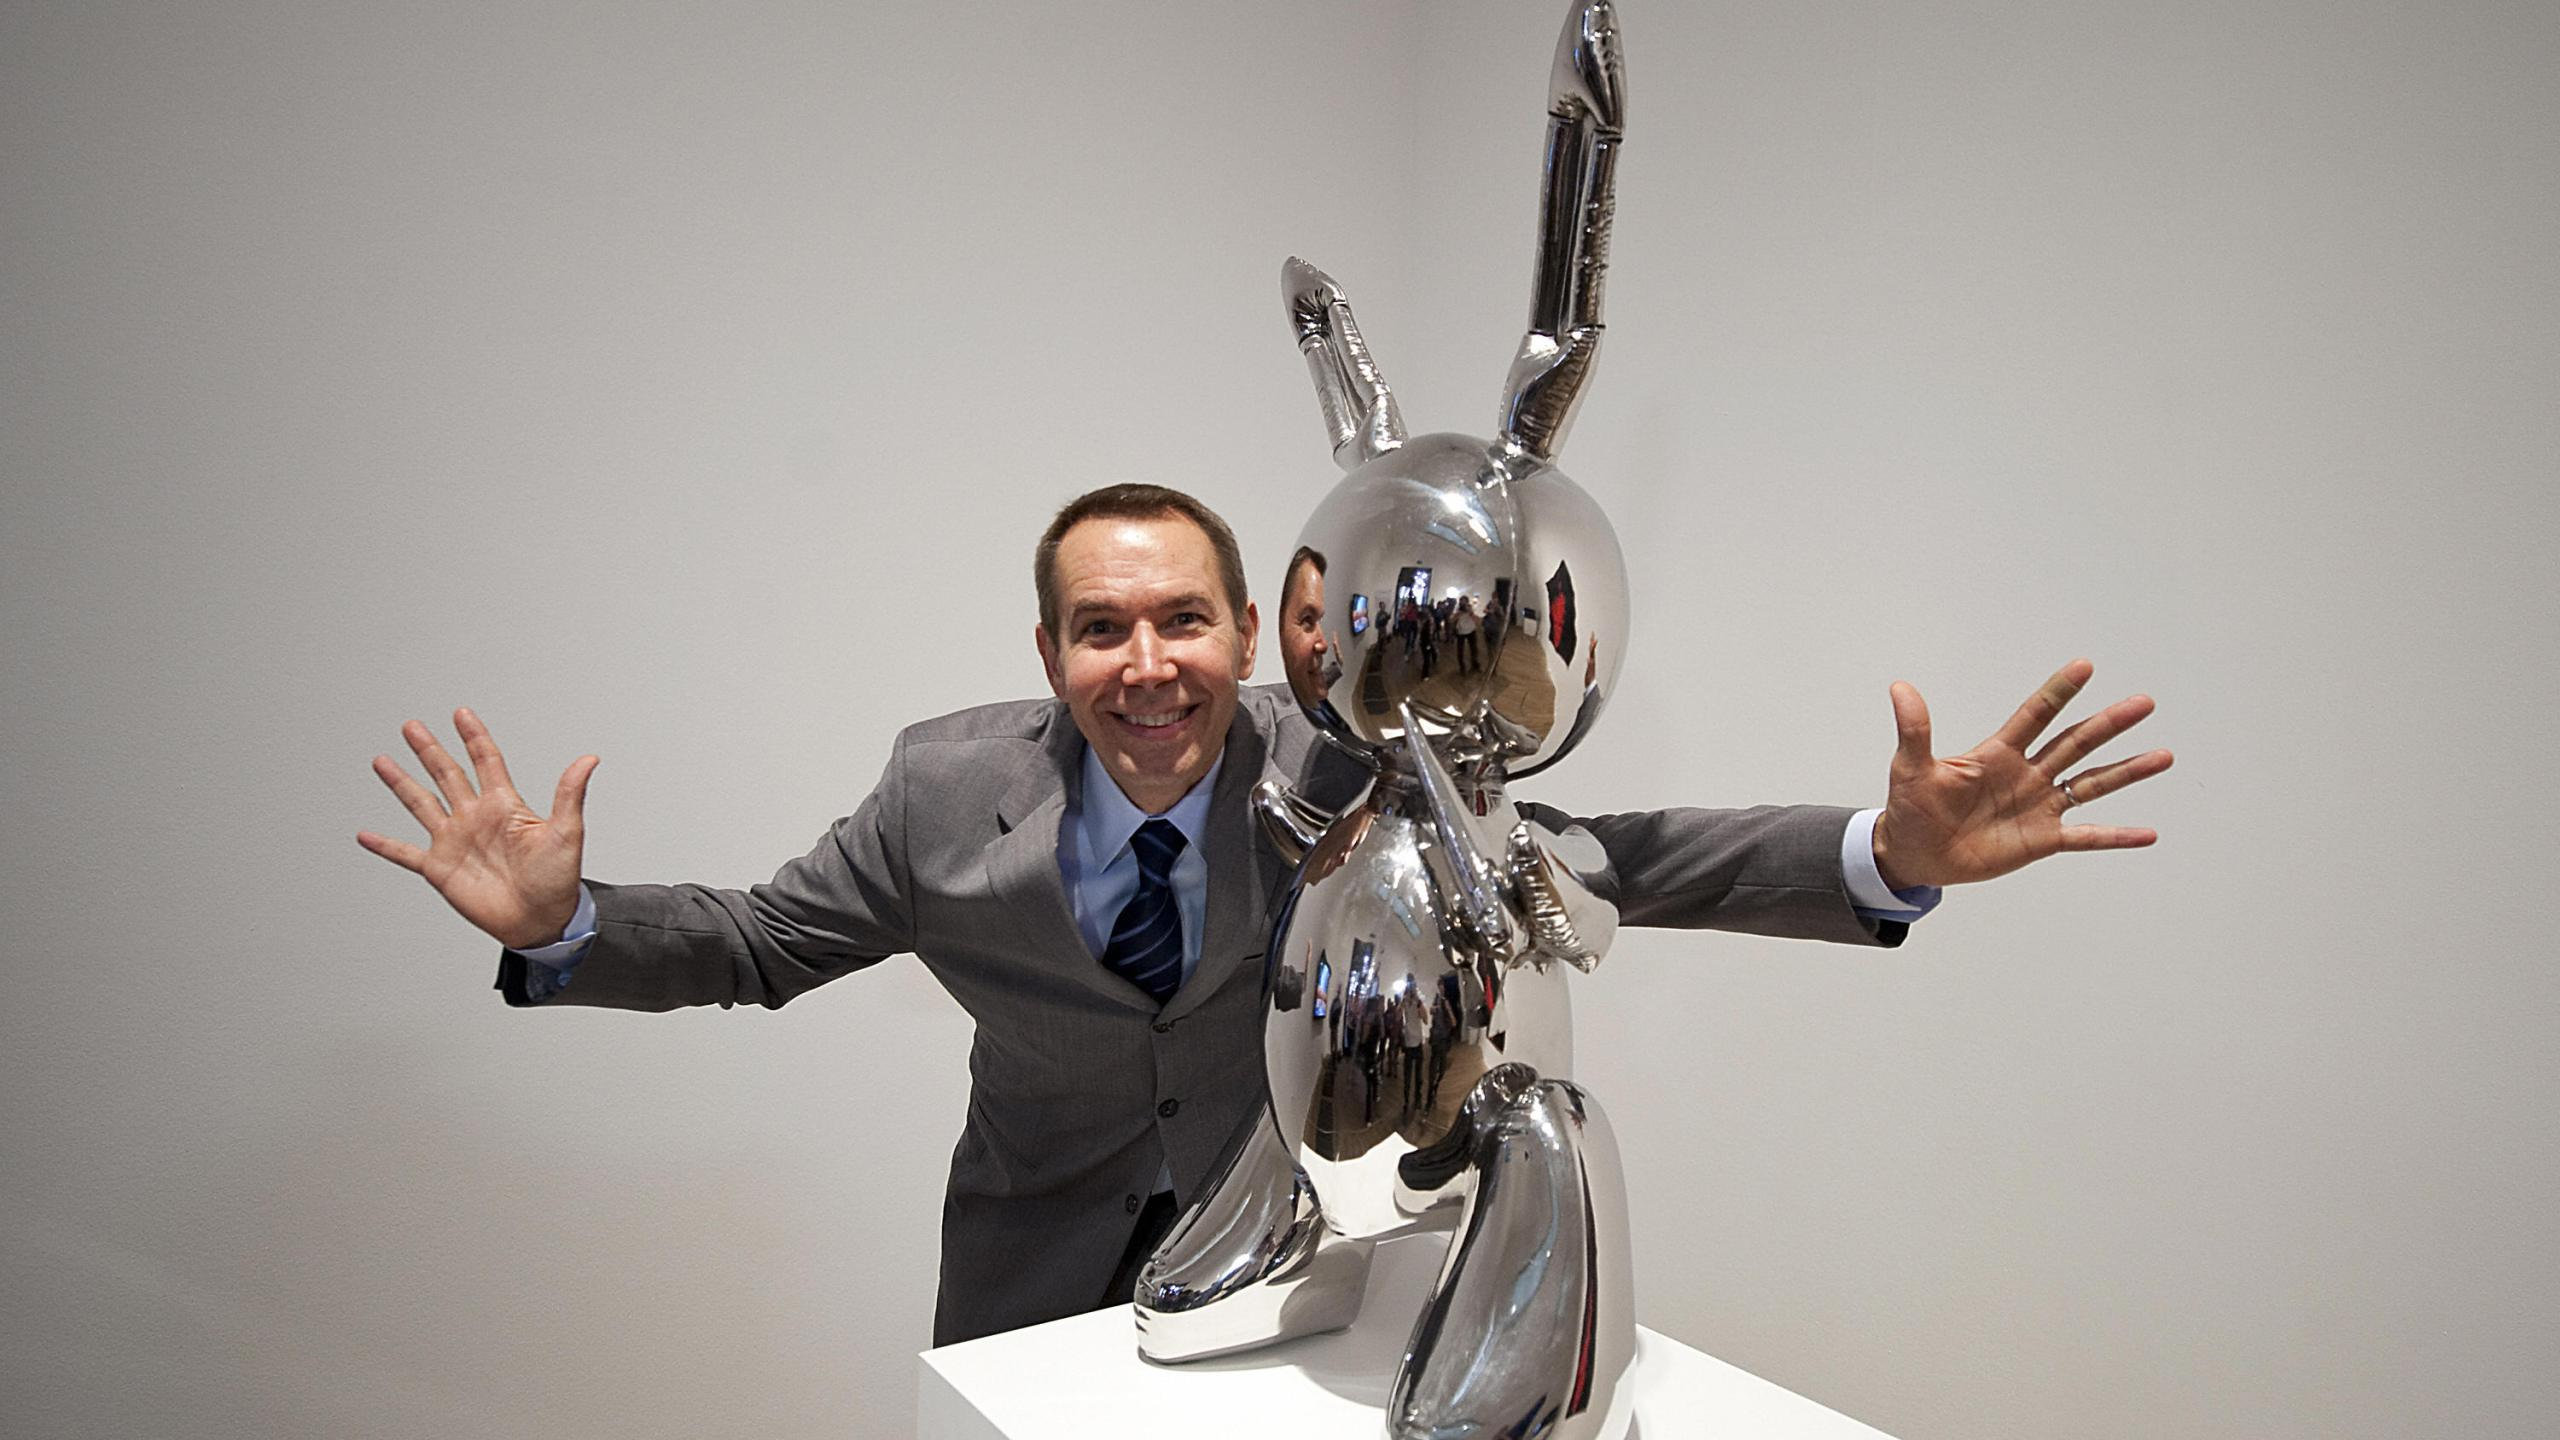 Artist Jeff Koons poses for photographs with his work of art entitled 'Rabbit 1986' during the press view of the 'Pop Life, Art In A Material World' exhibition at the Tate Modern, in London, on September 29, 2009. (Credit: BEN STANSALL/AFP/Getty Images)